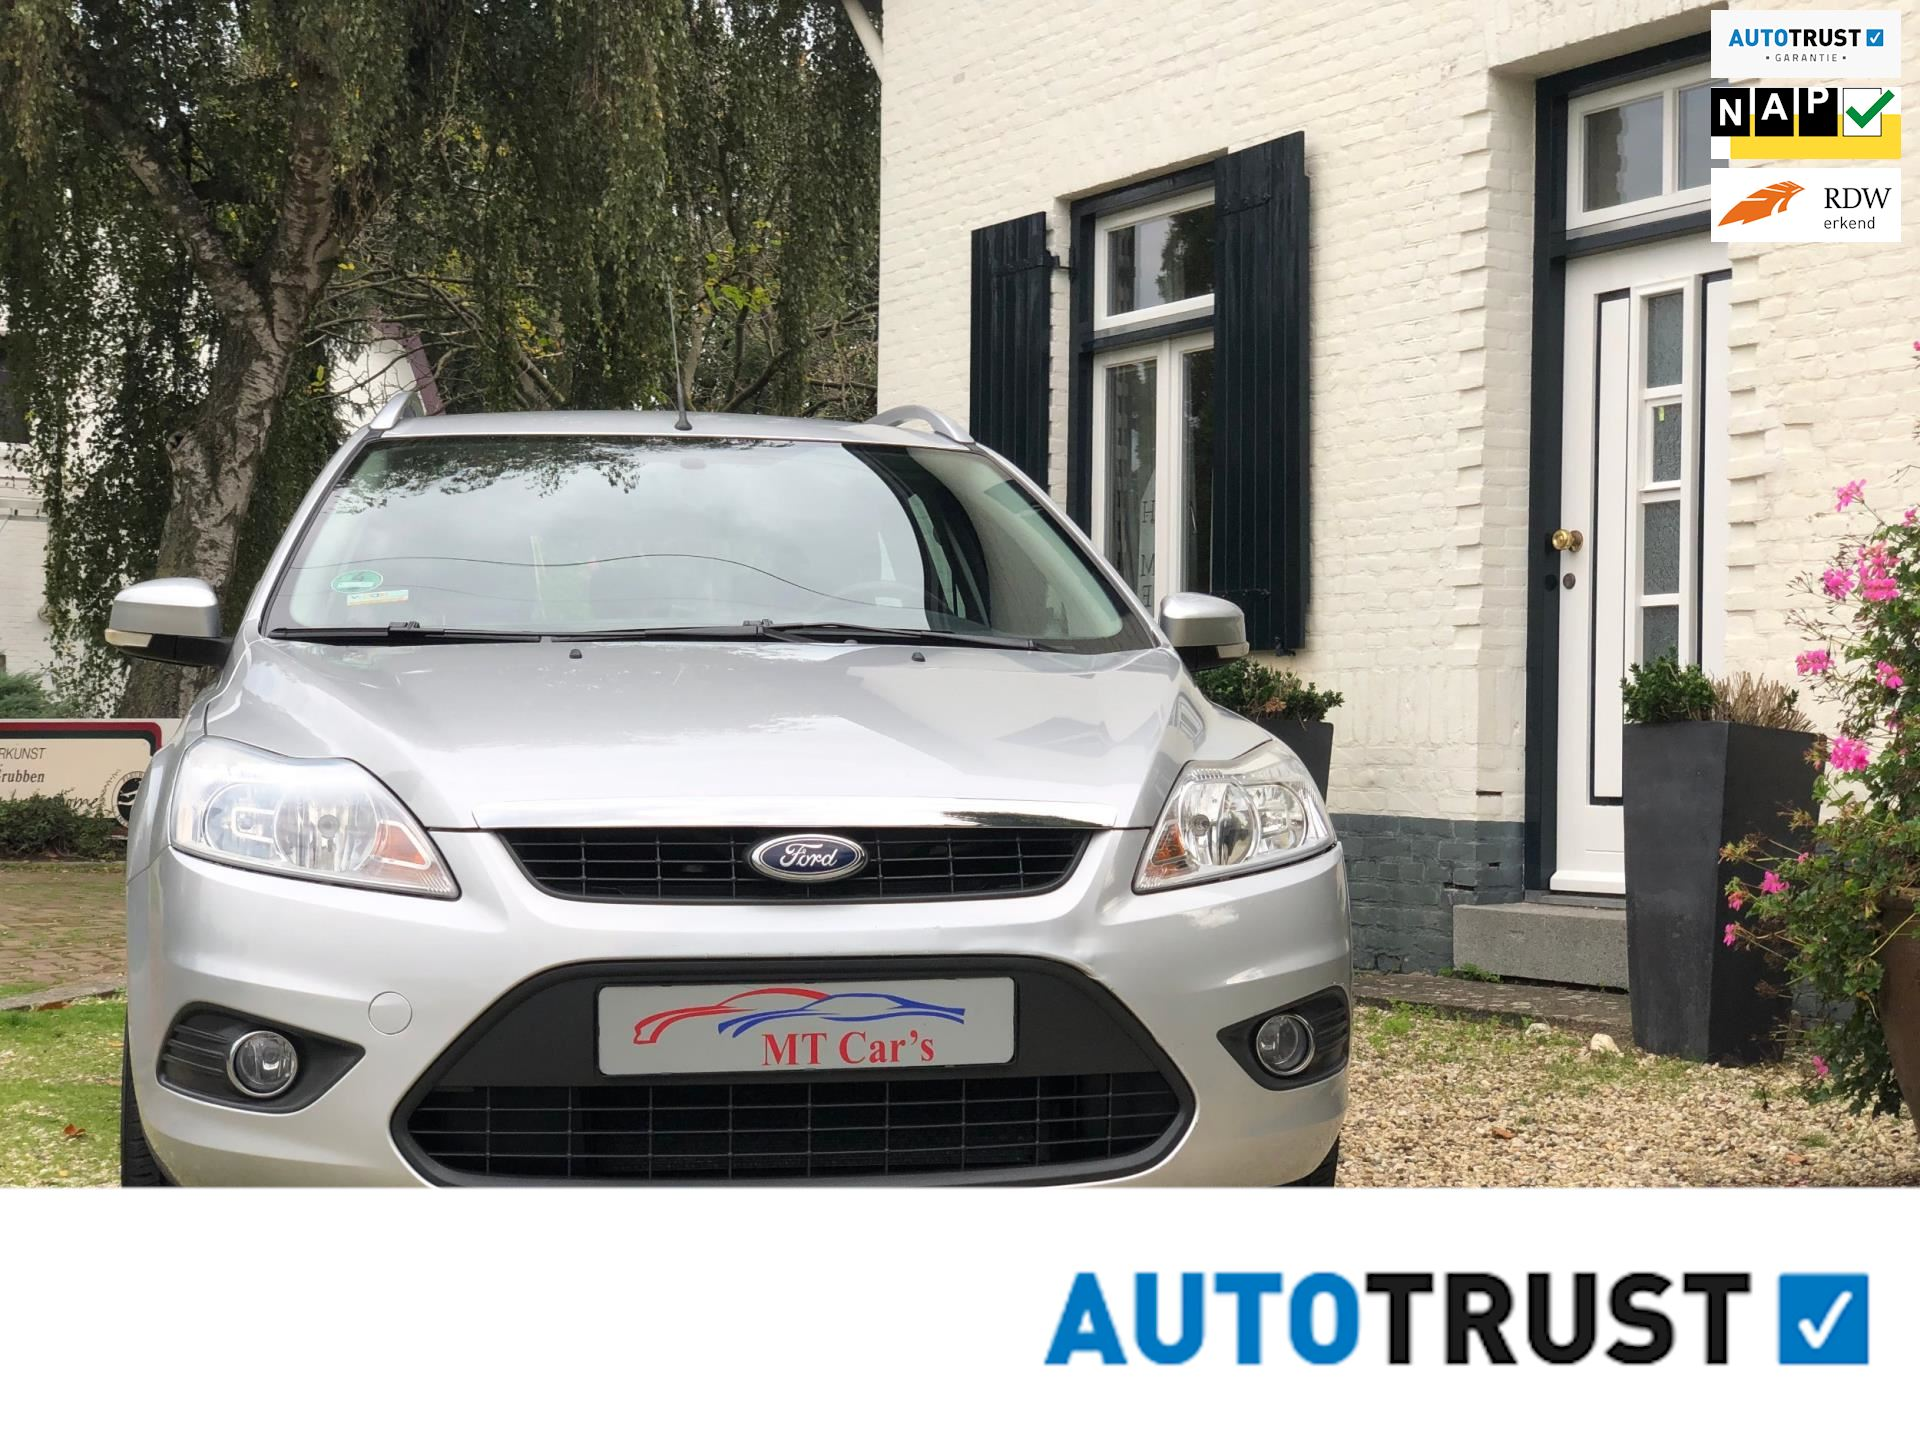 Ford Focus Wagon occasion - M.T.  Car's & Carcleaningcenter